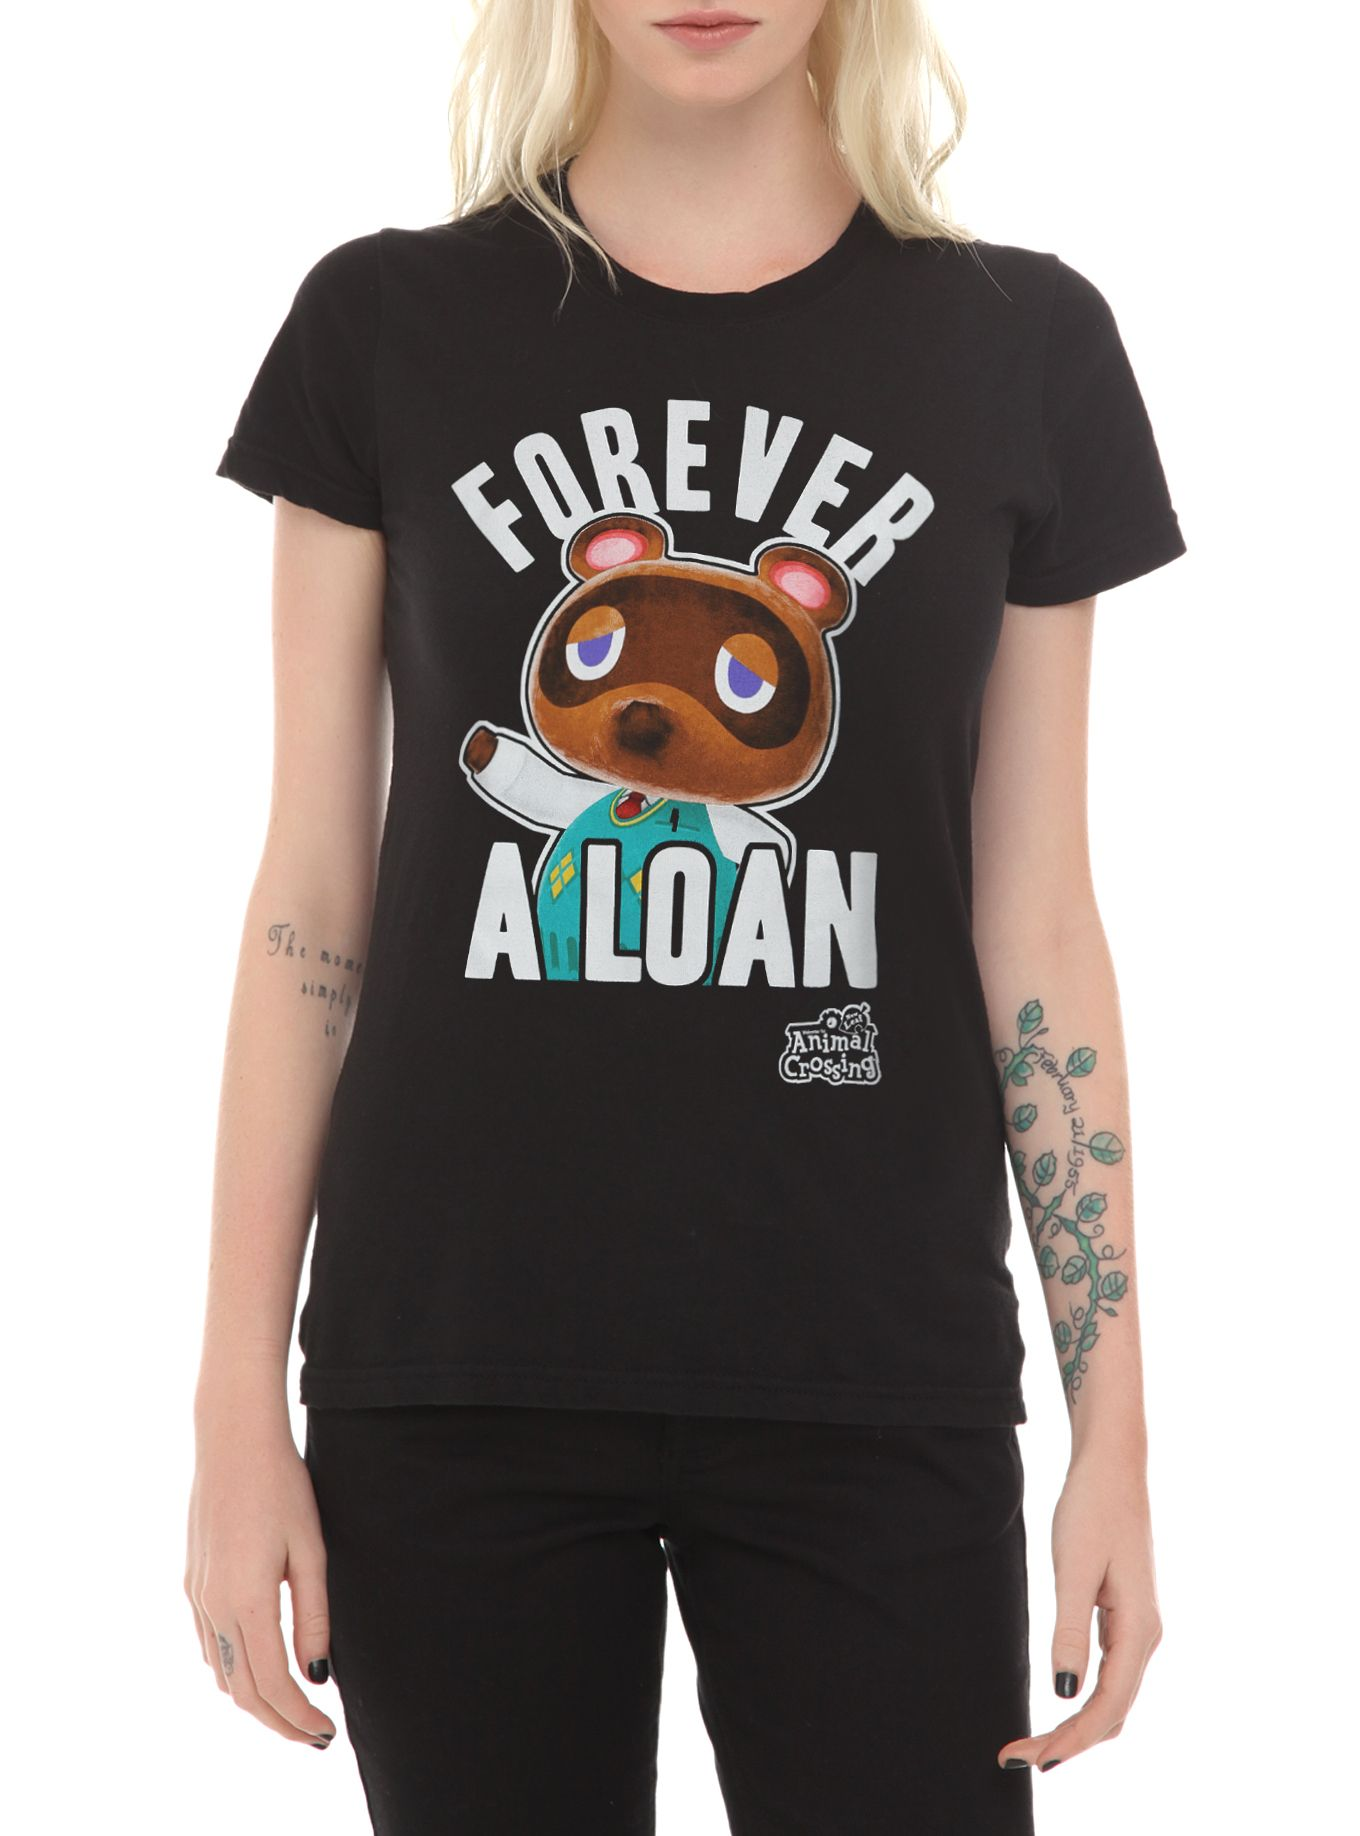 Fitted black tee from Animal Crossing: New Leaf with